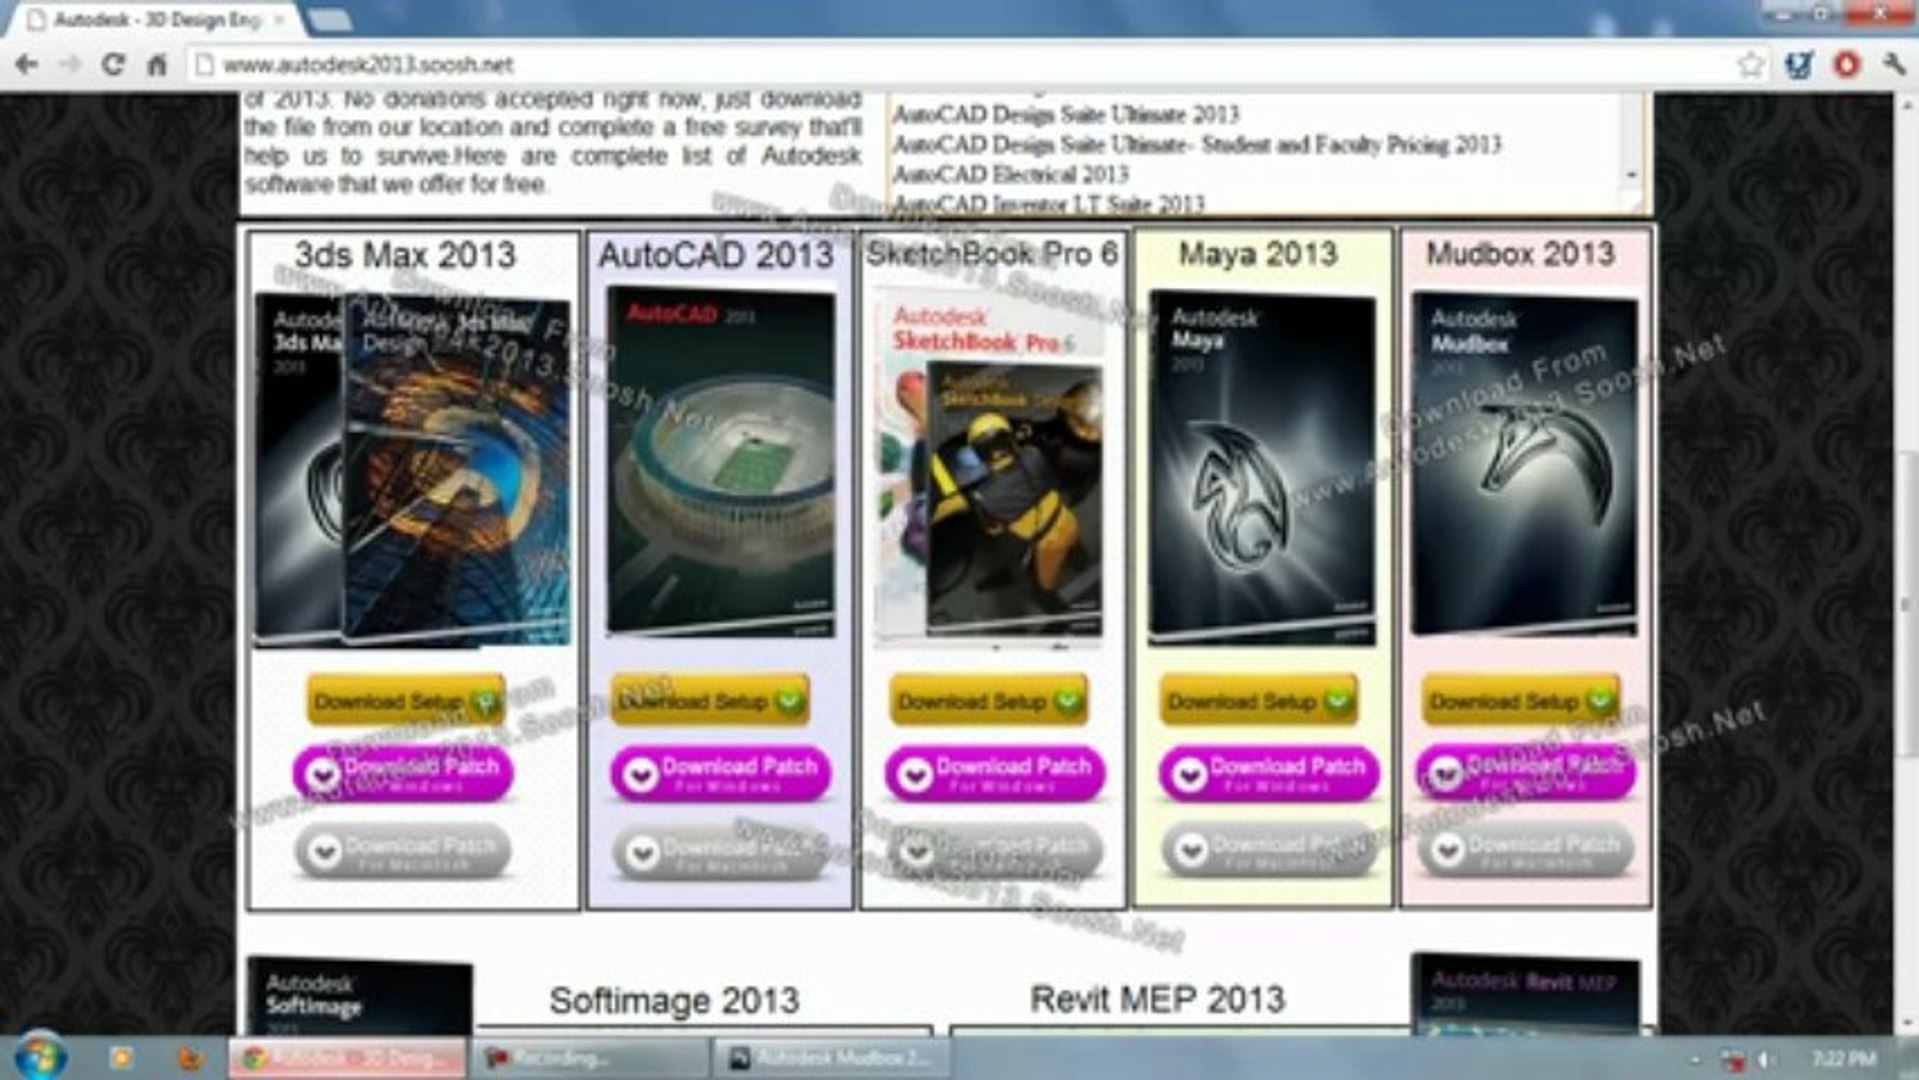 autocad 2013 free download full version with crack 64 bit kickass